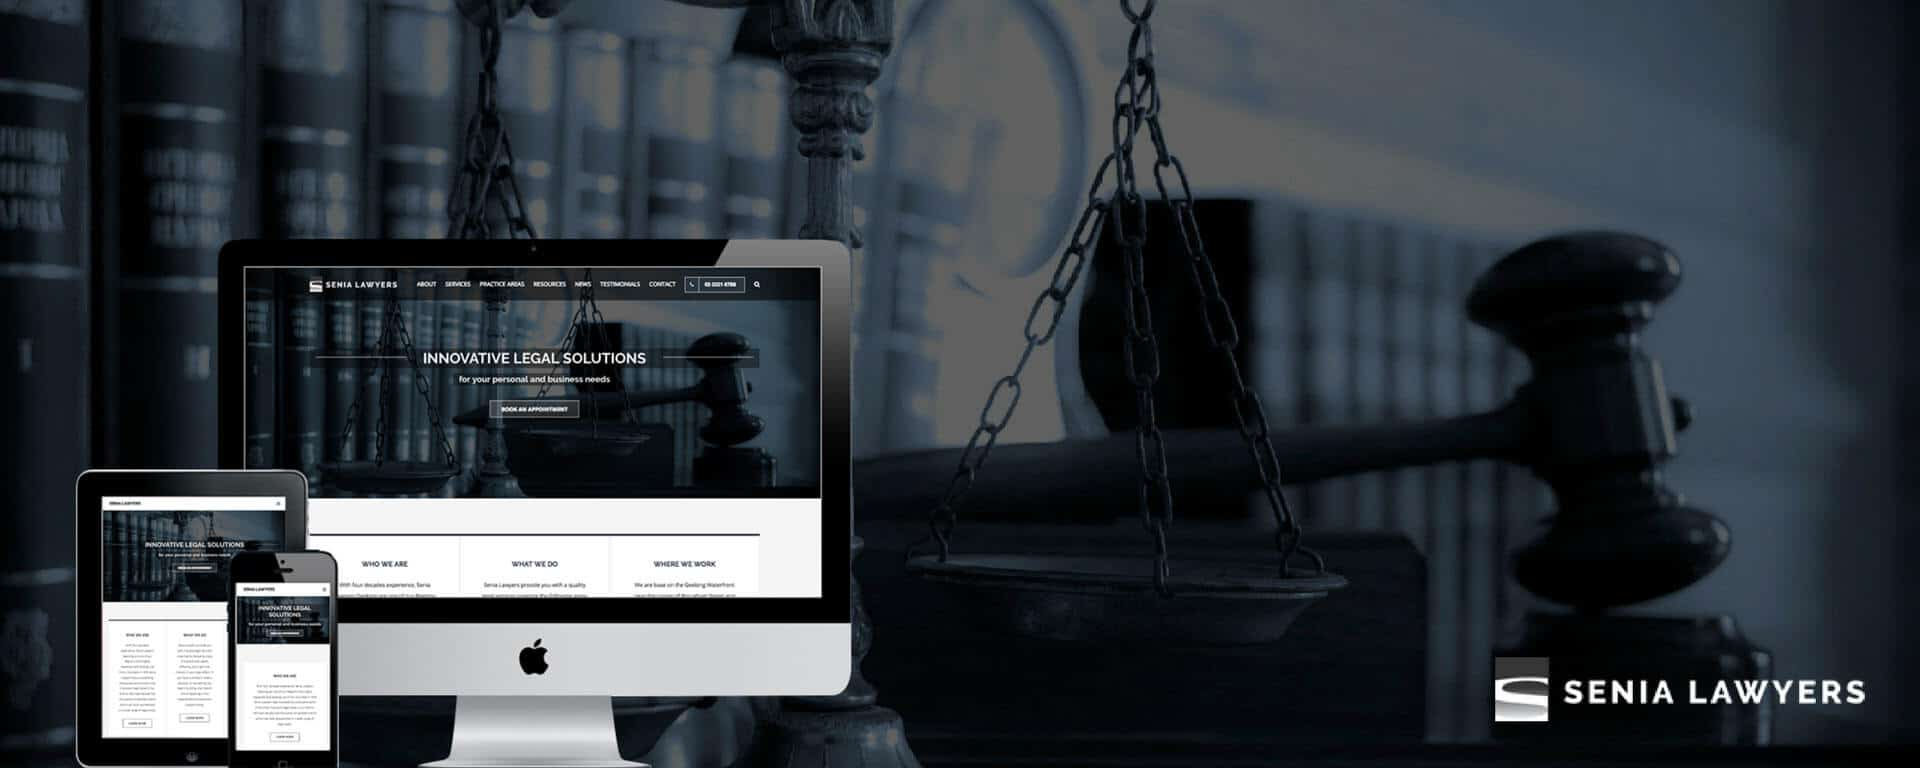 Senia Lawyers website design